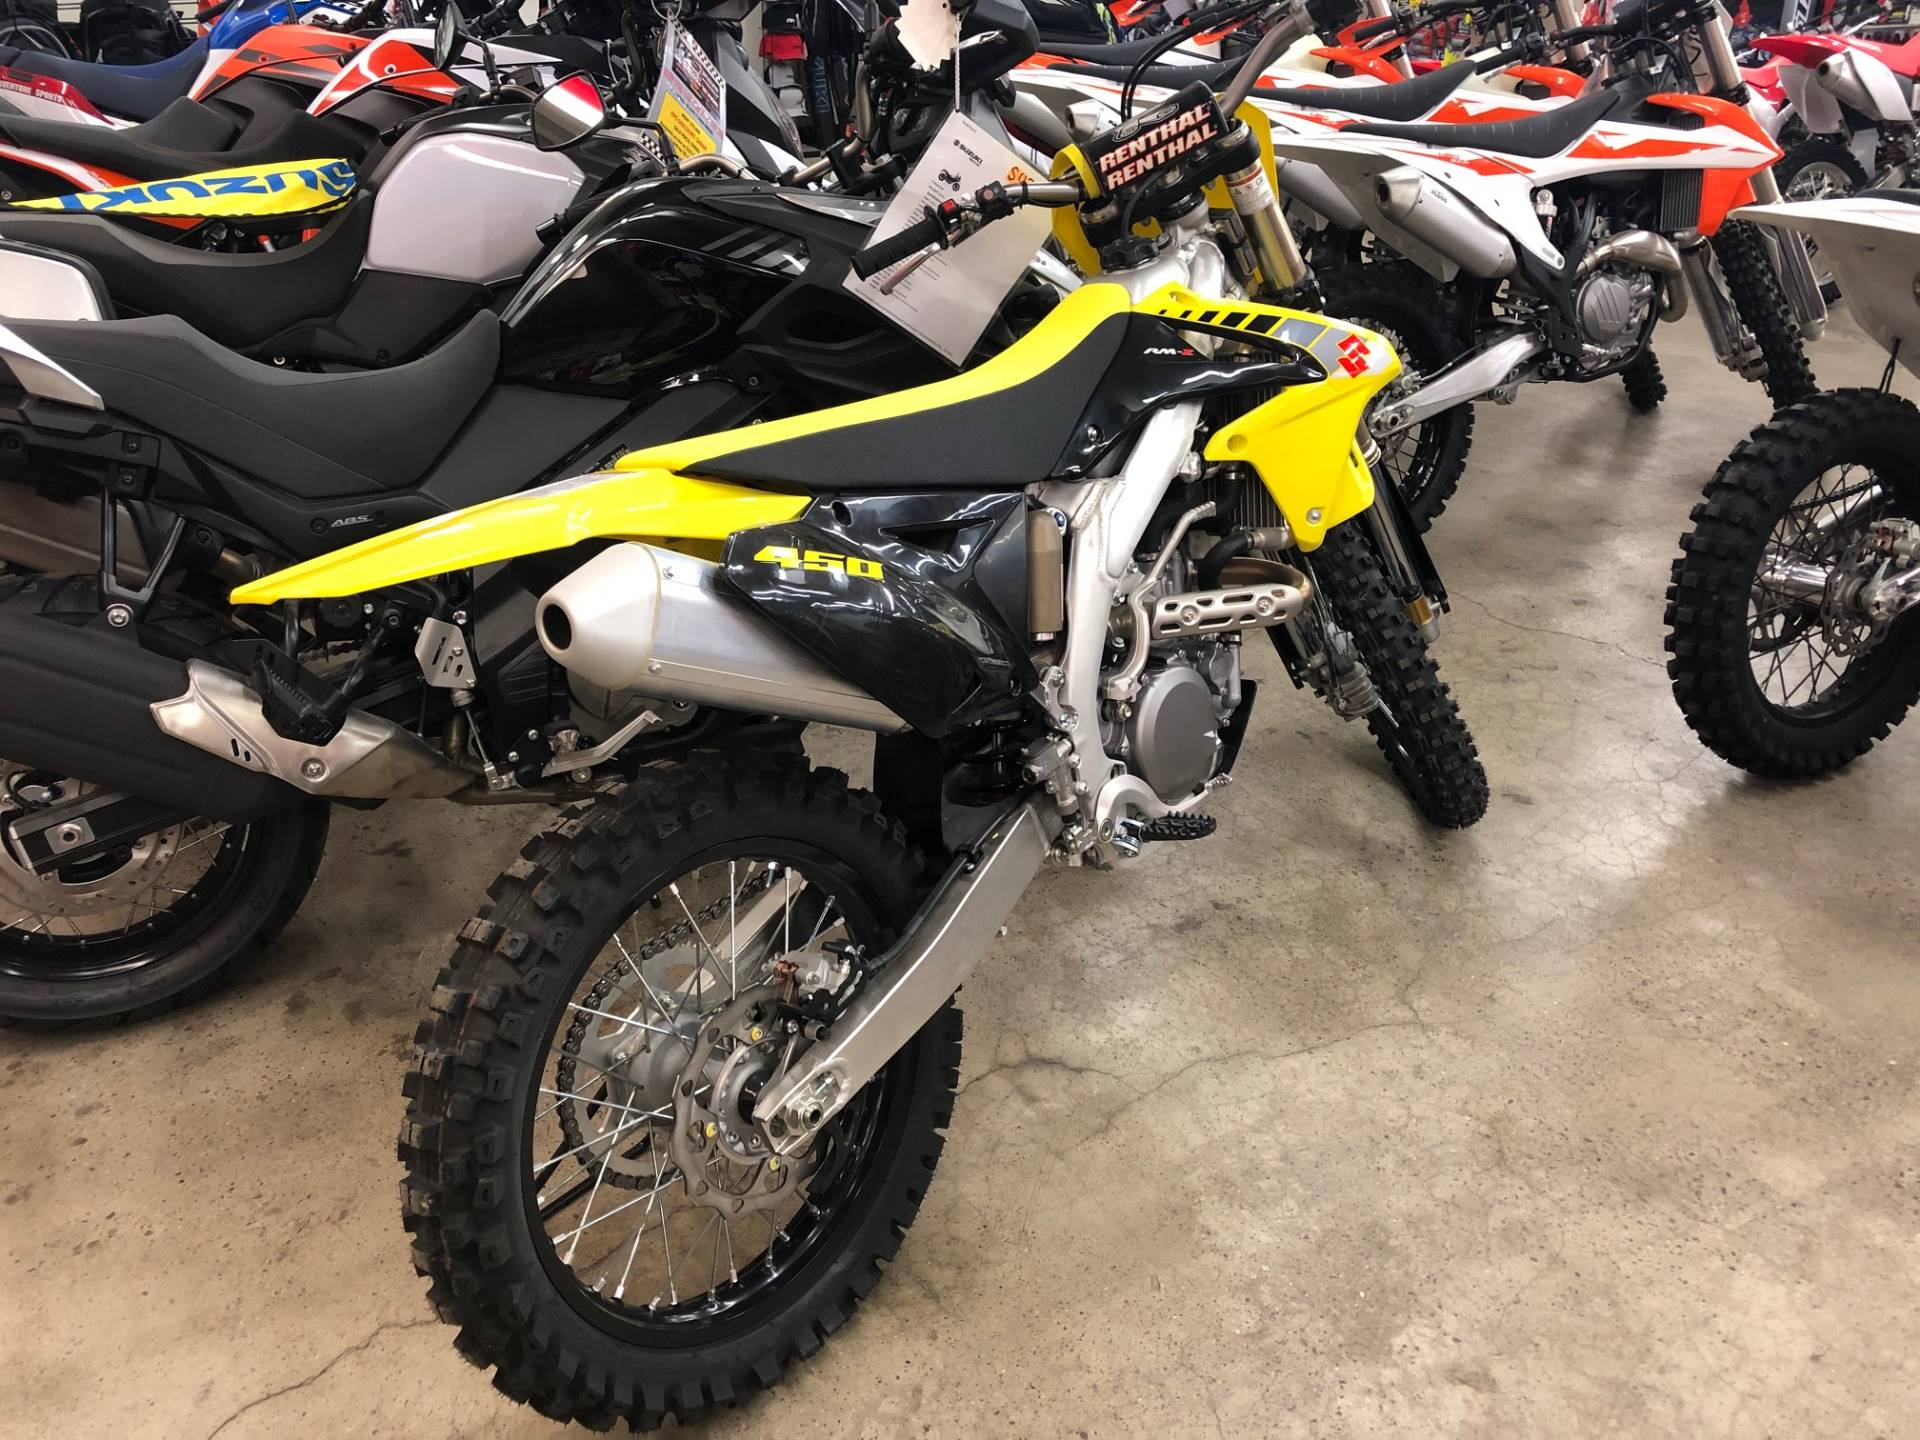 2017 Suzuki RMZ 450 in Pocatello, Idaho - Photo 4